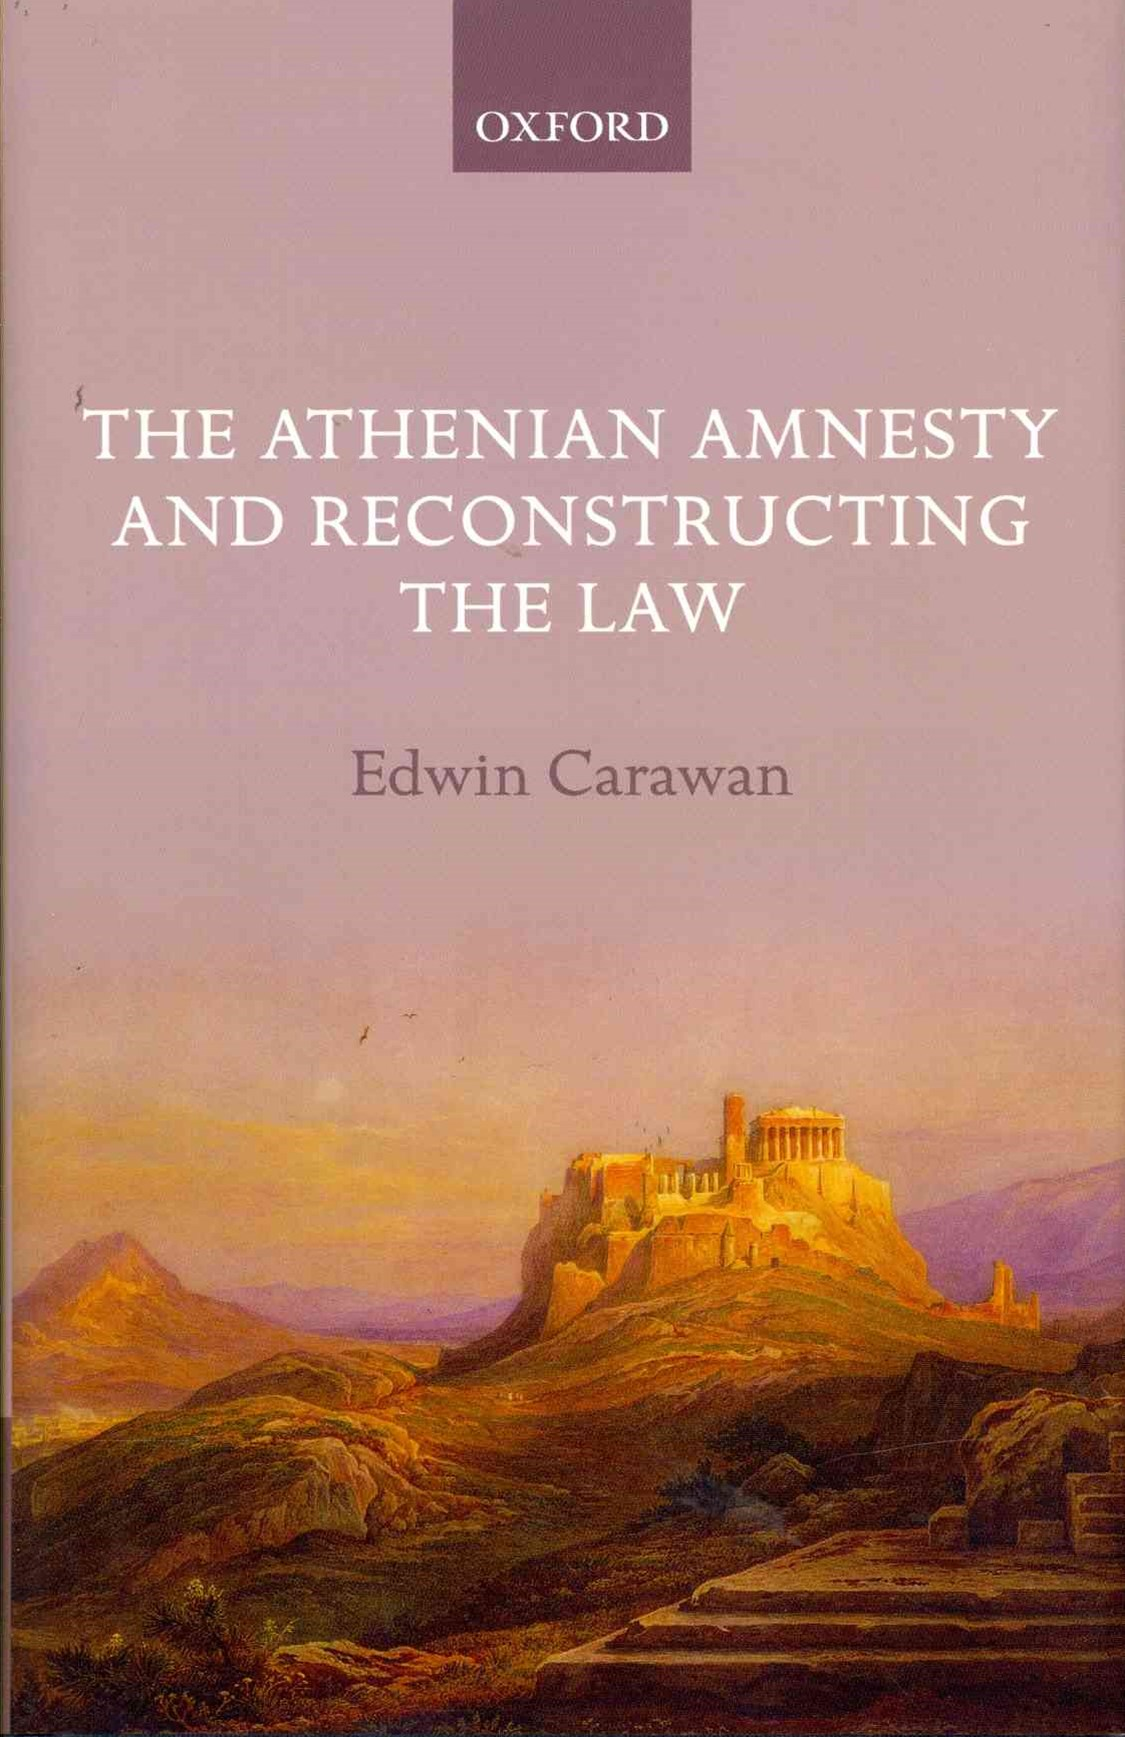 The Athenian Amnesty and Reconstructing the Law